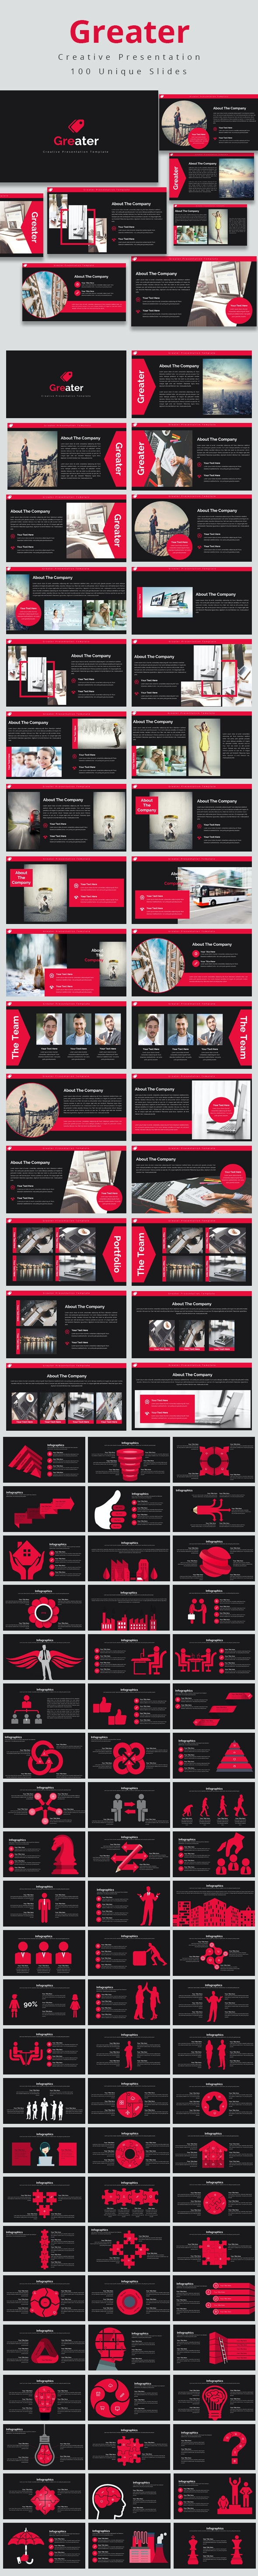 Greater Multi-purpose Powerpoint Presentation Template - Business PowerPoint Templates